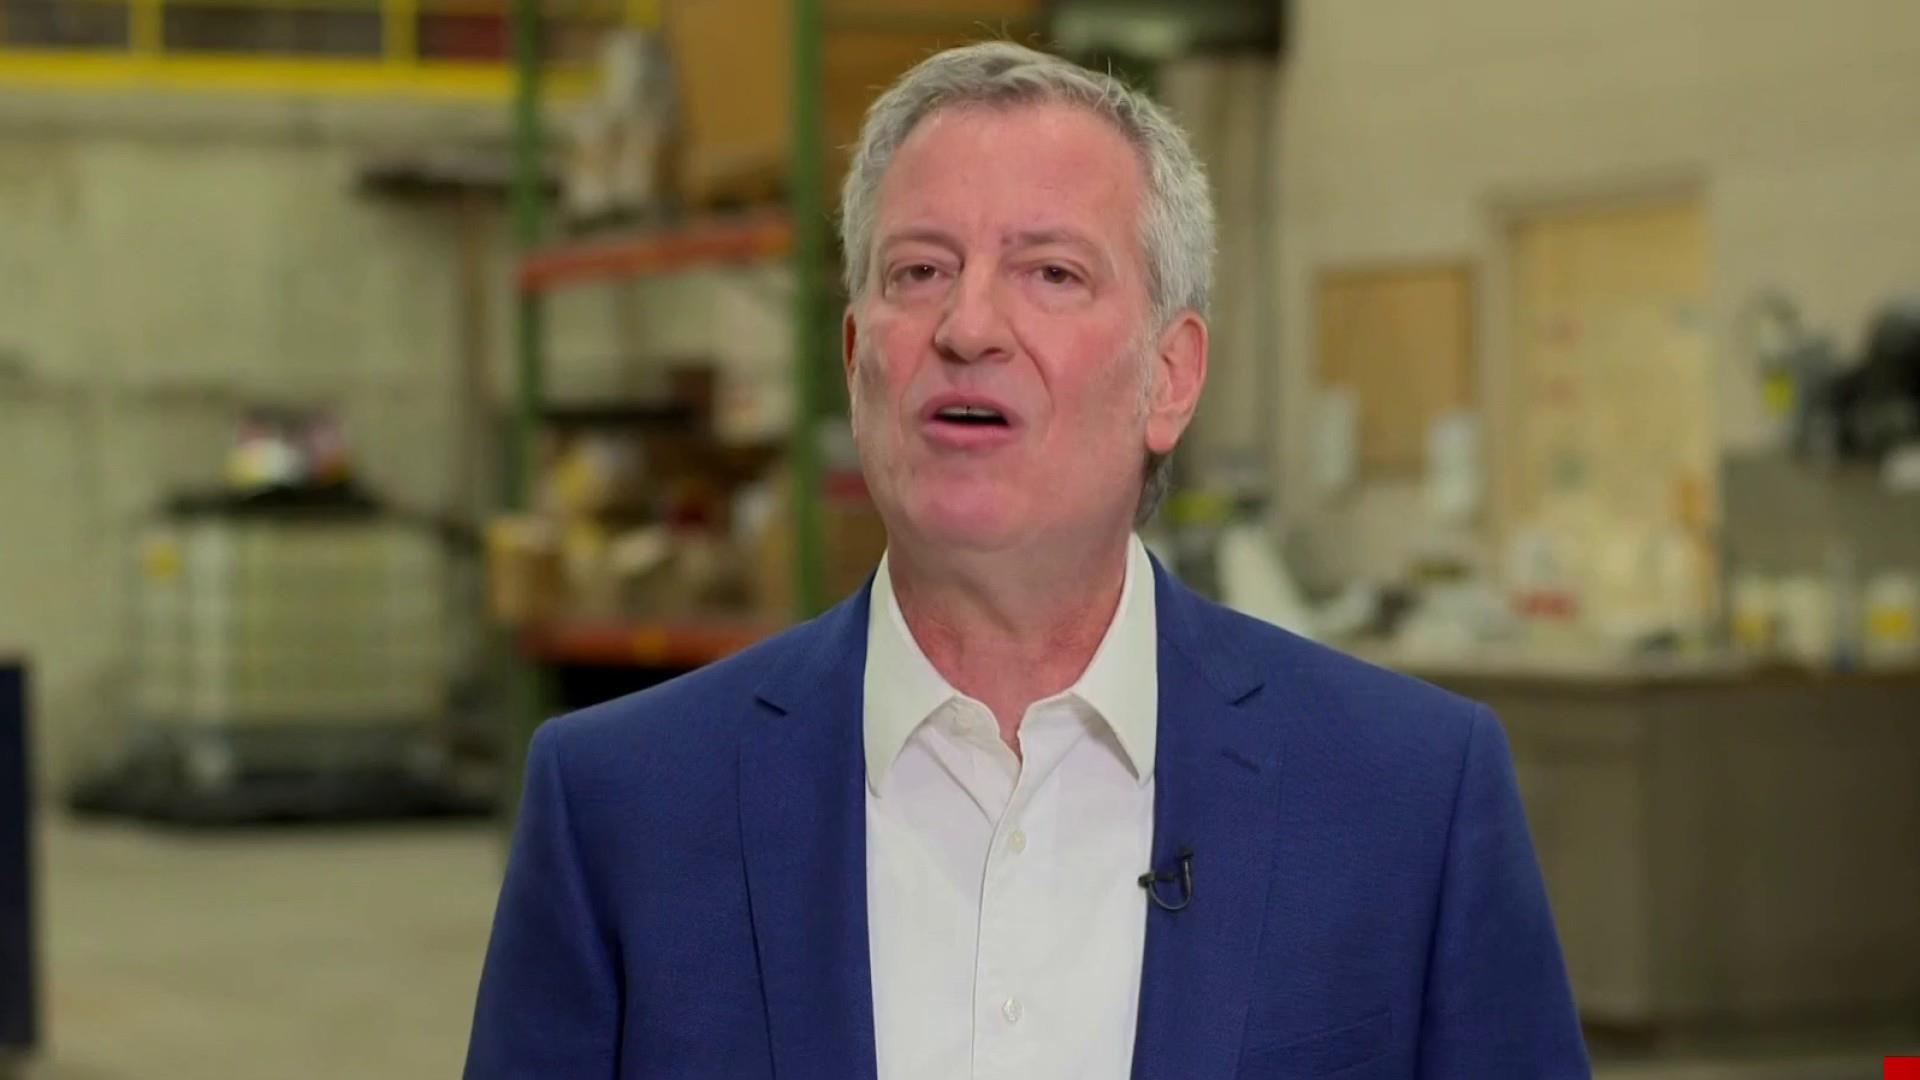 Mayor de Blasio: Donald Trump has conned everyone